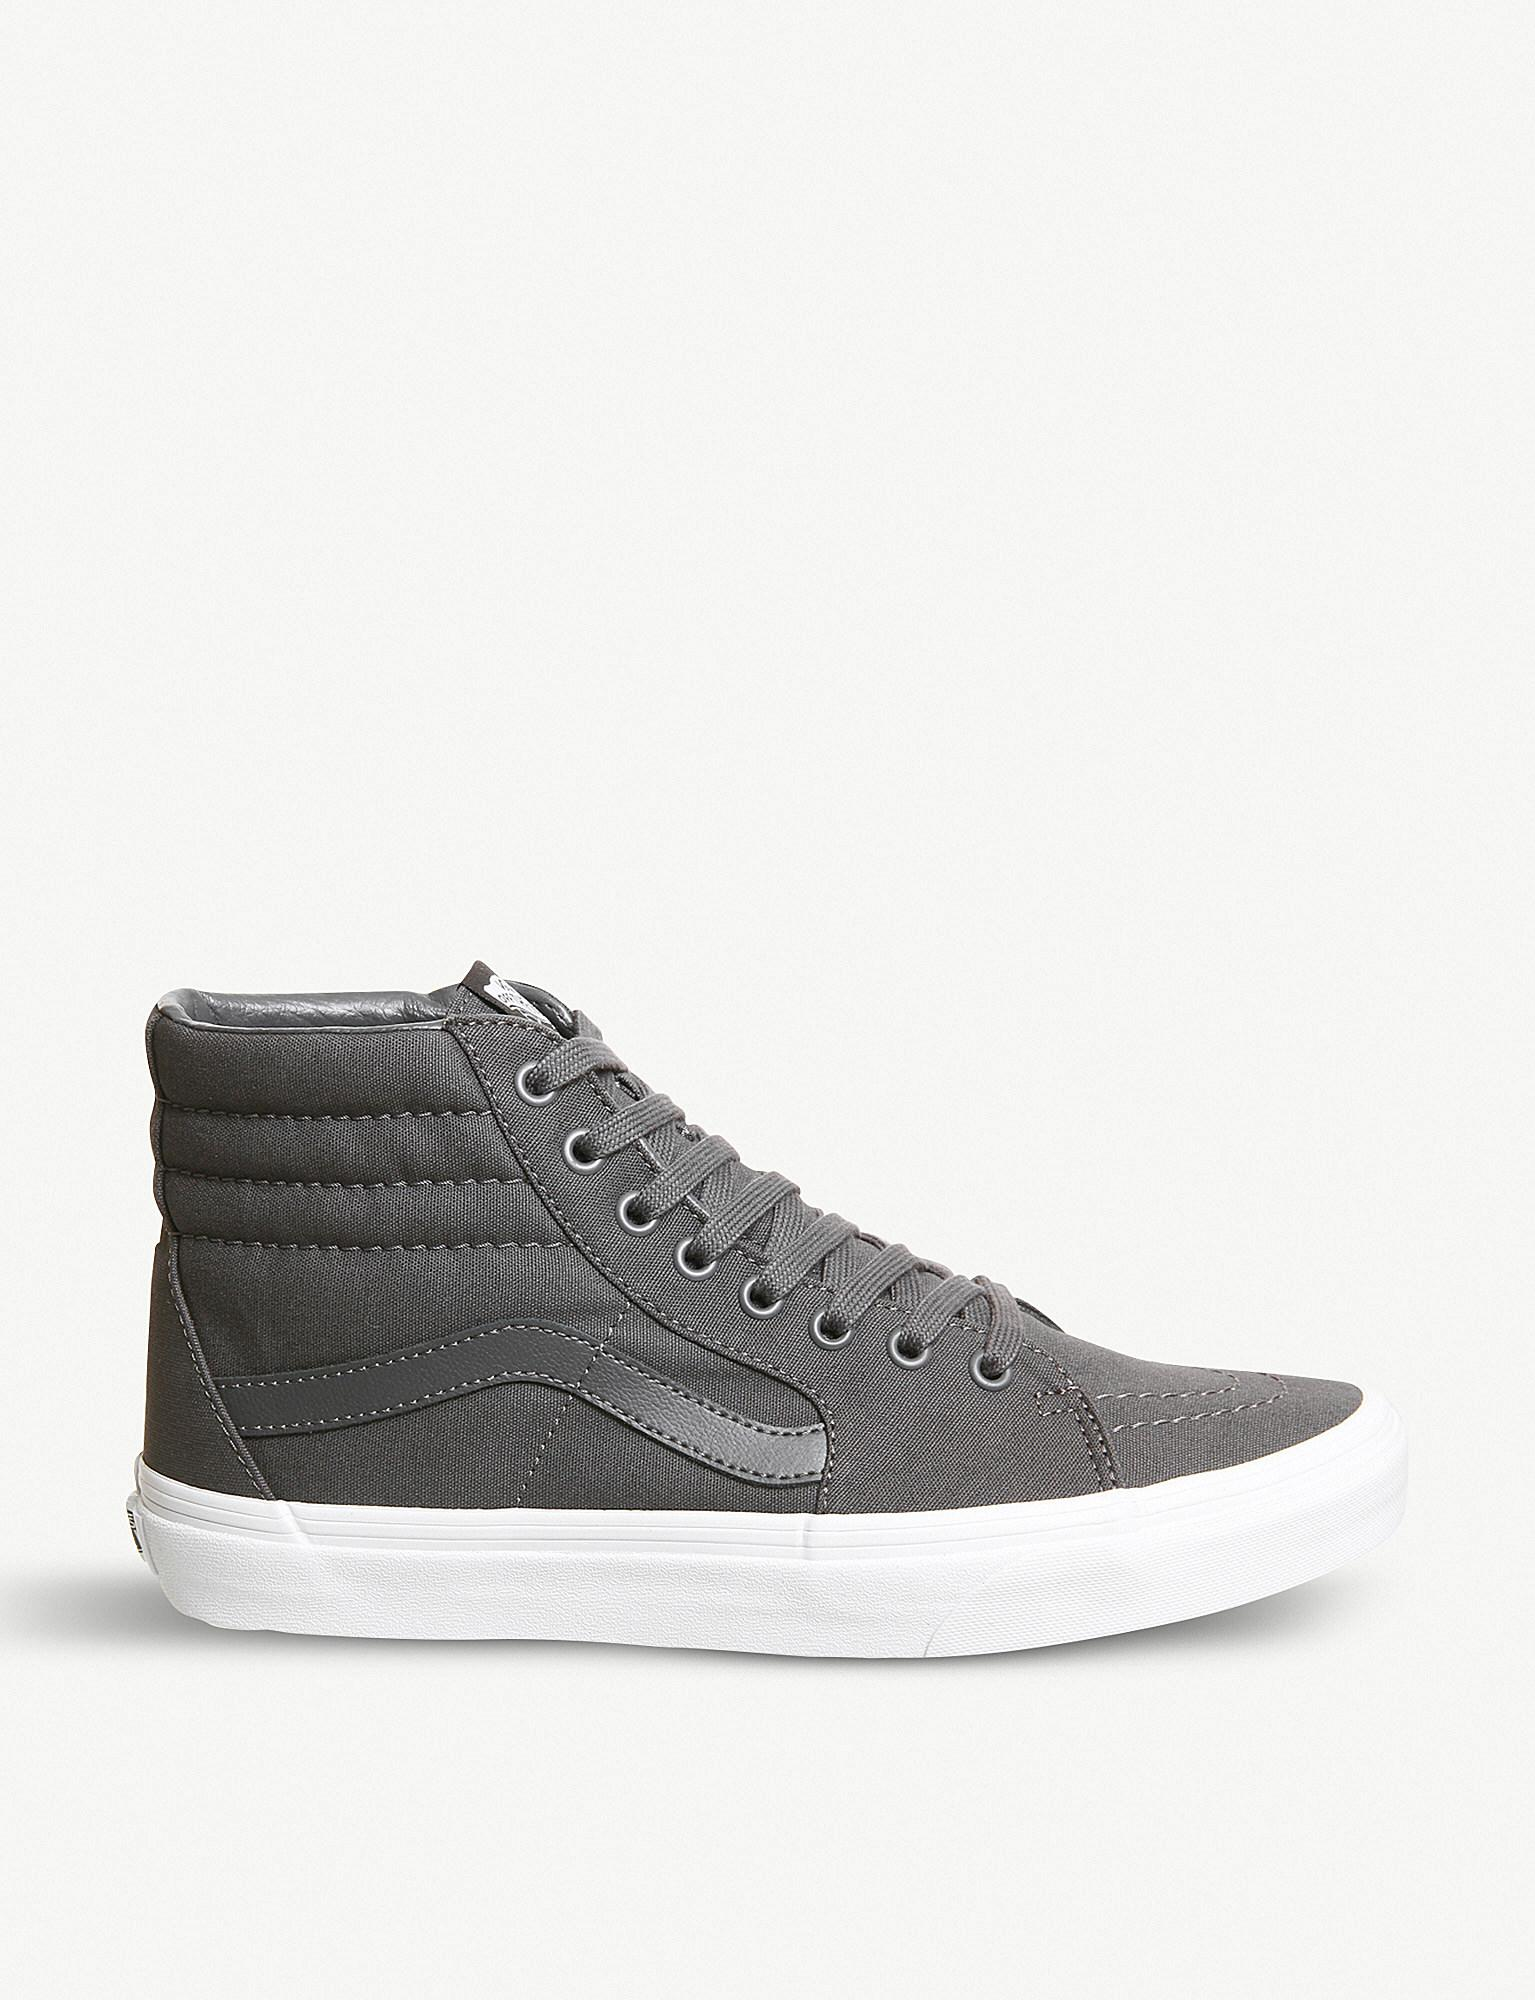 0d97b674d6 Vans Sk8 Hi Canvas Trainers in Gray for Men - Lyst